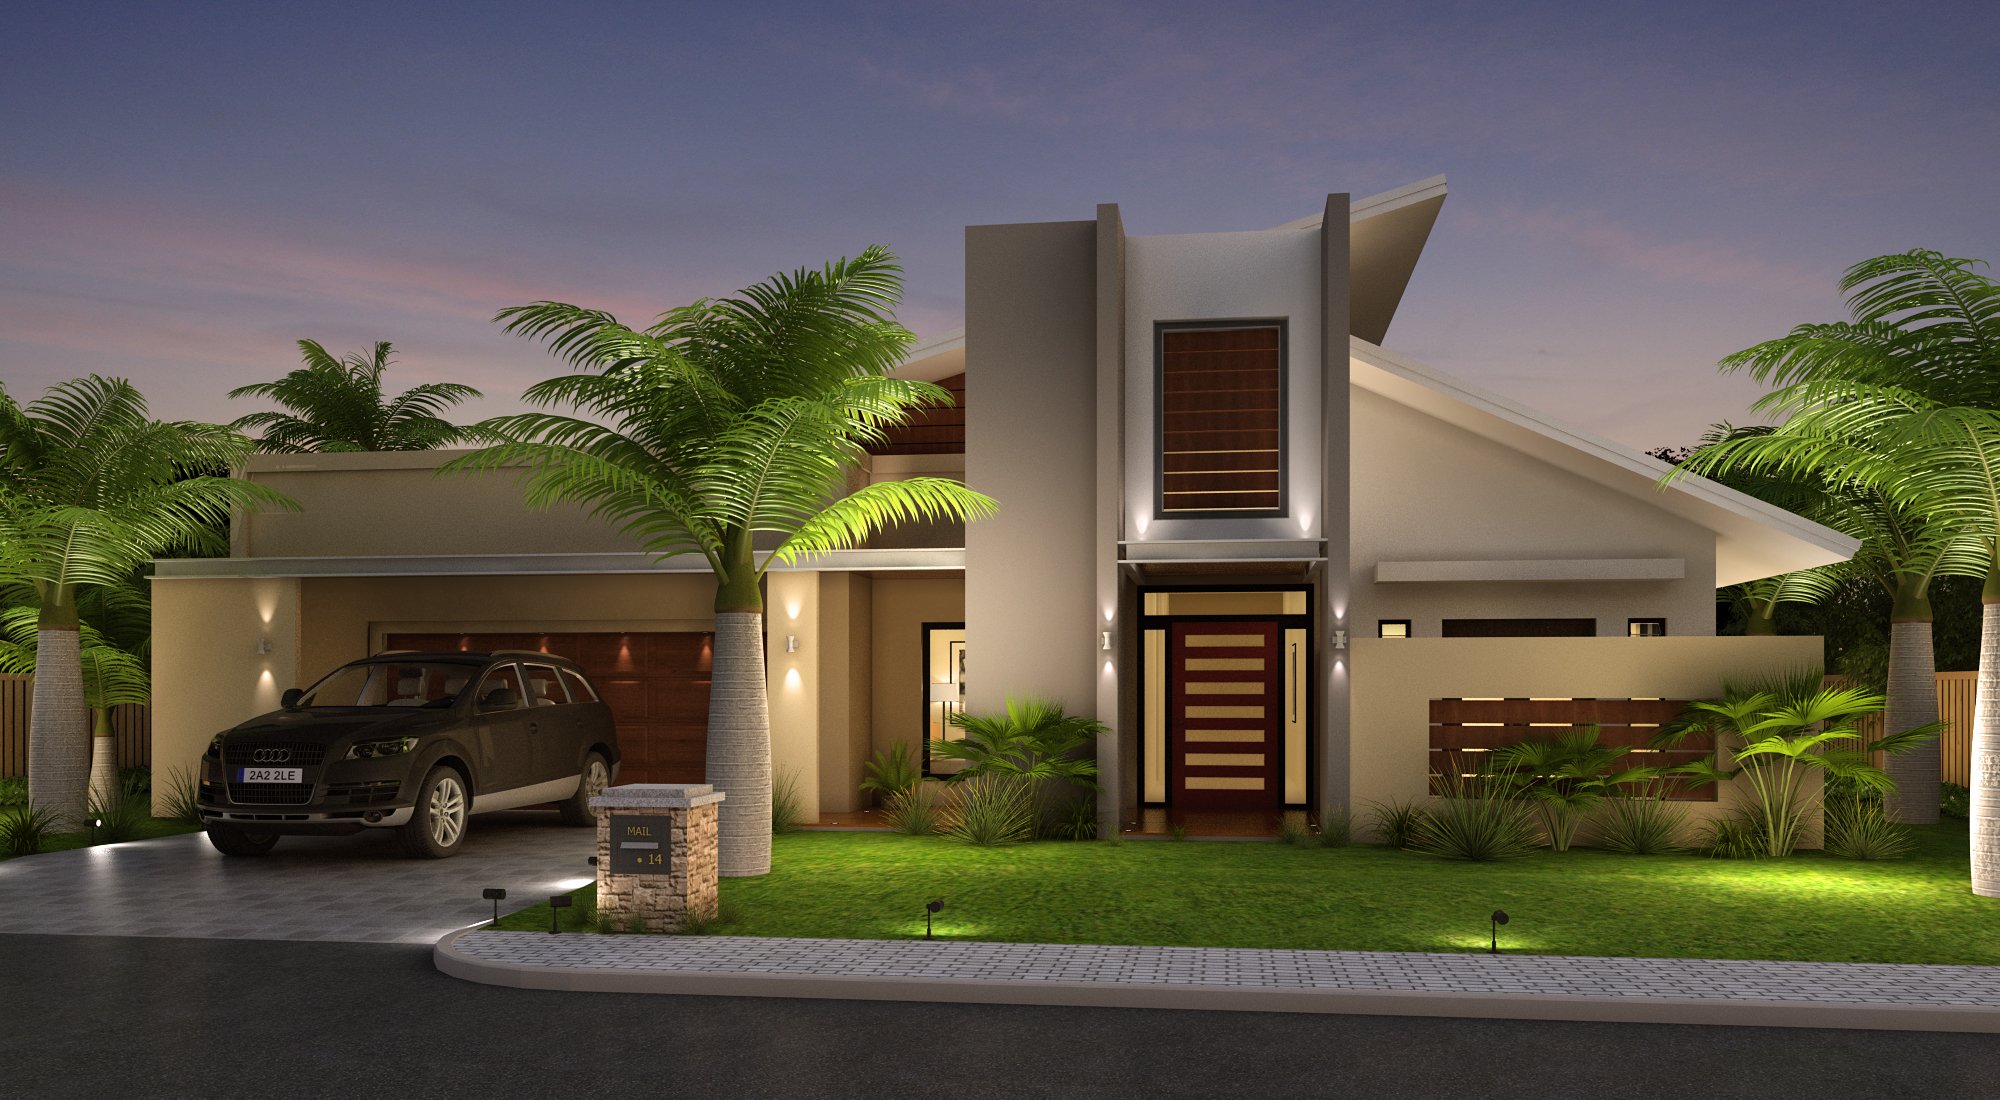 Beautiful home front elevation designs and ideas for Best home designs australia